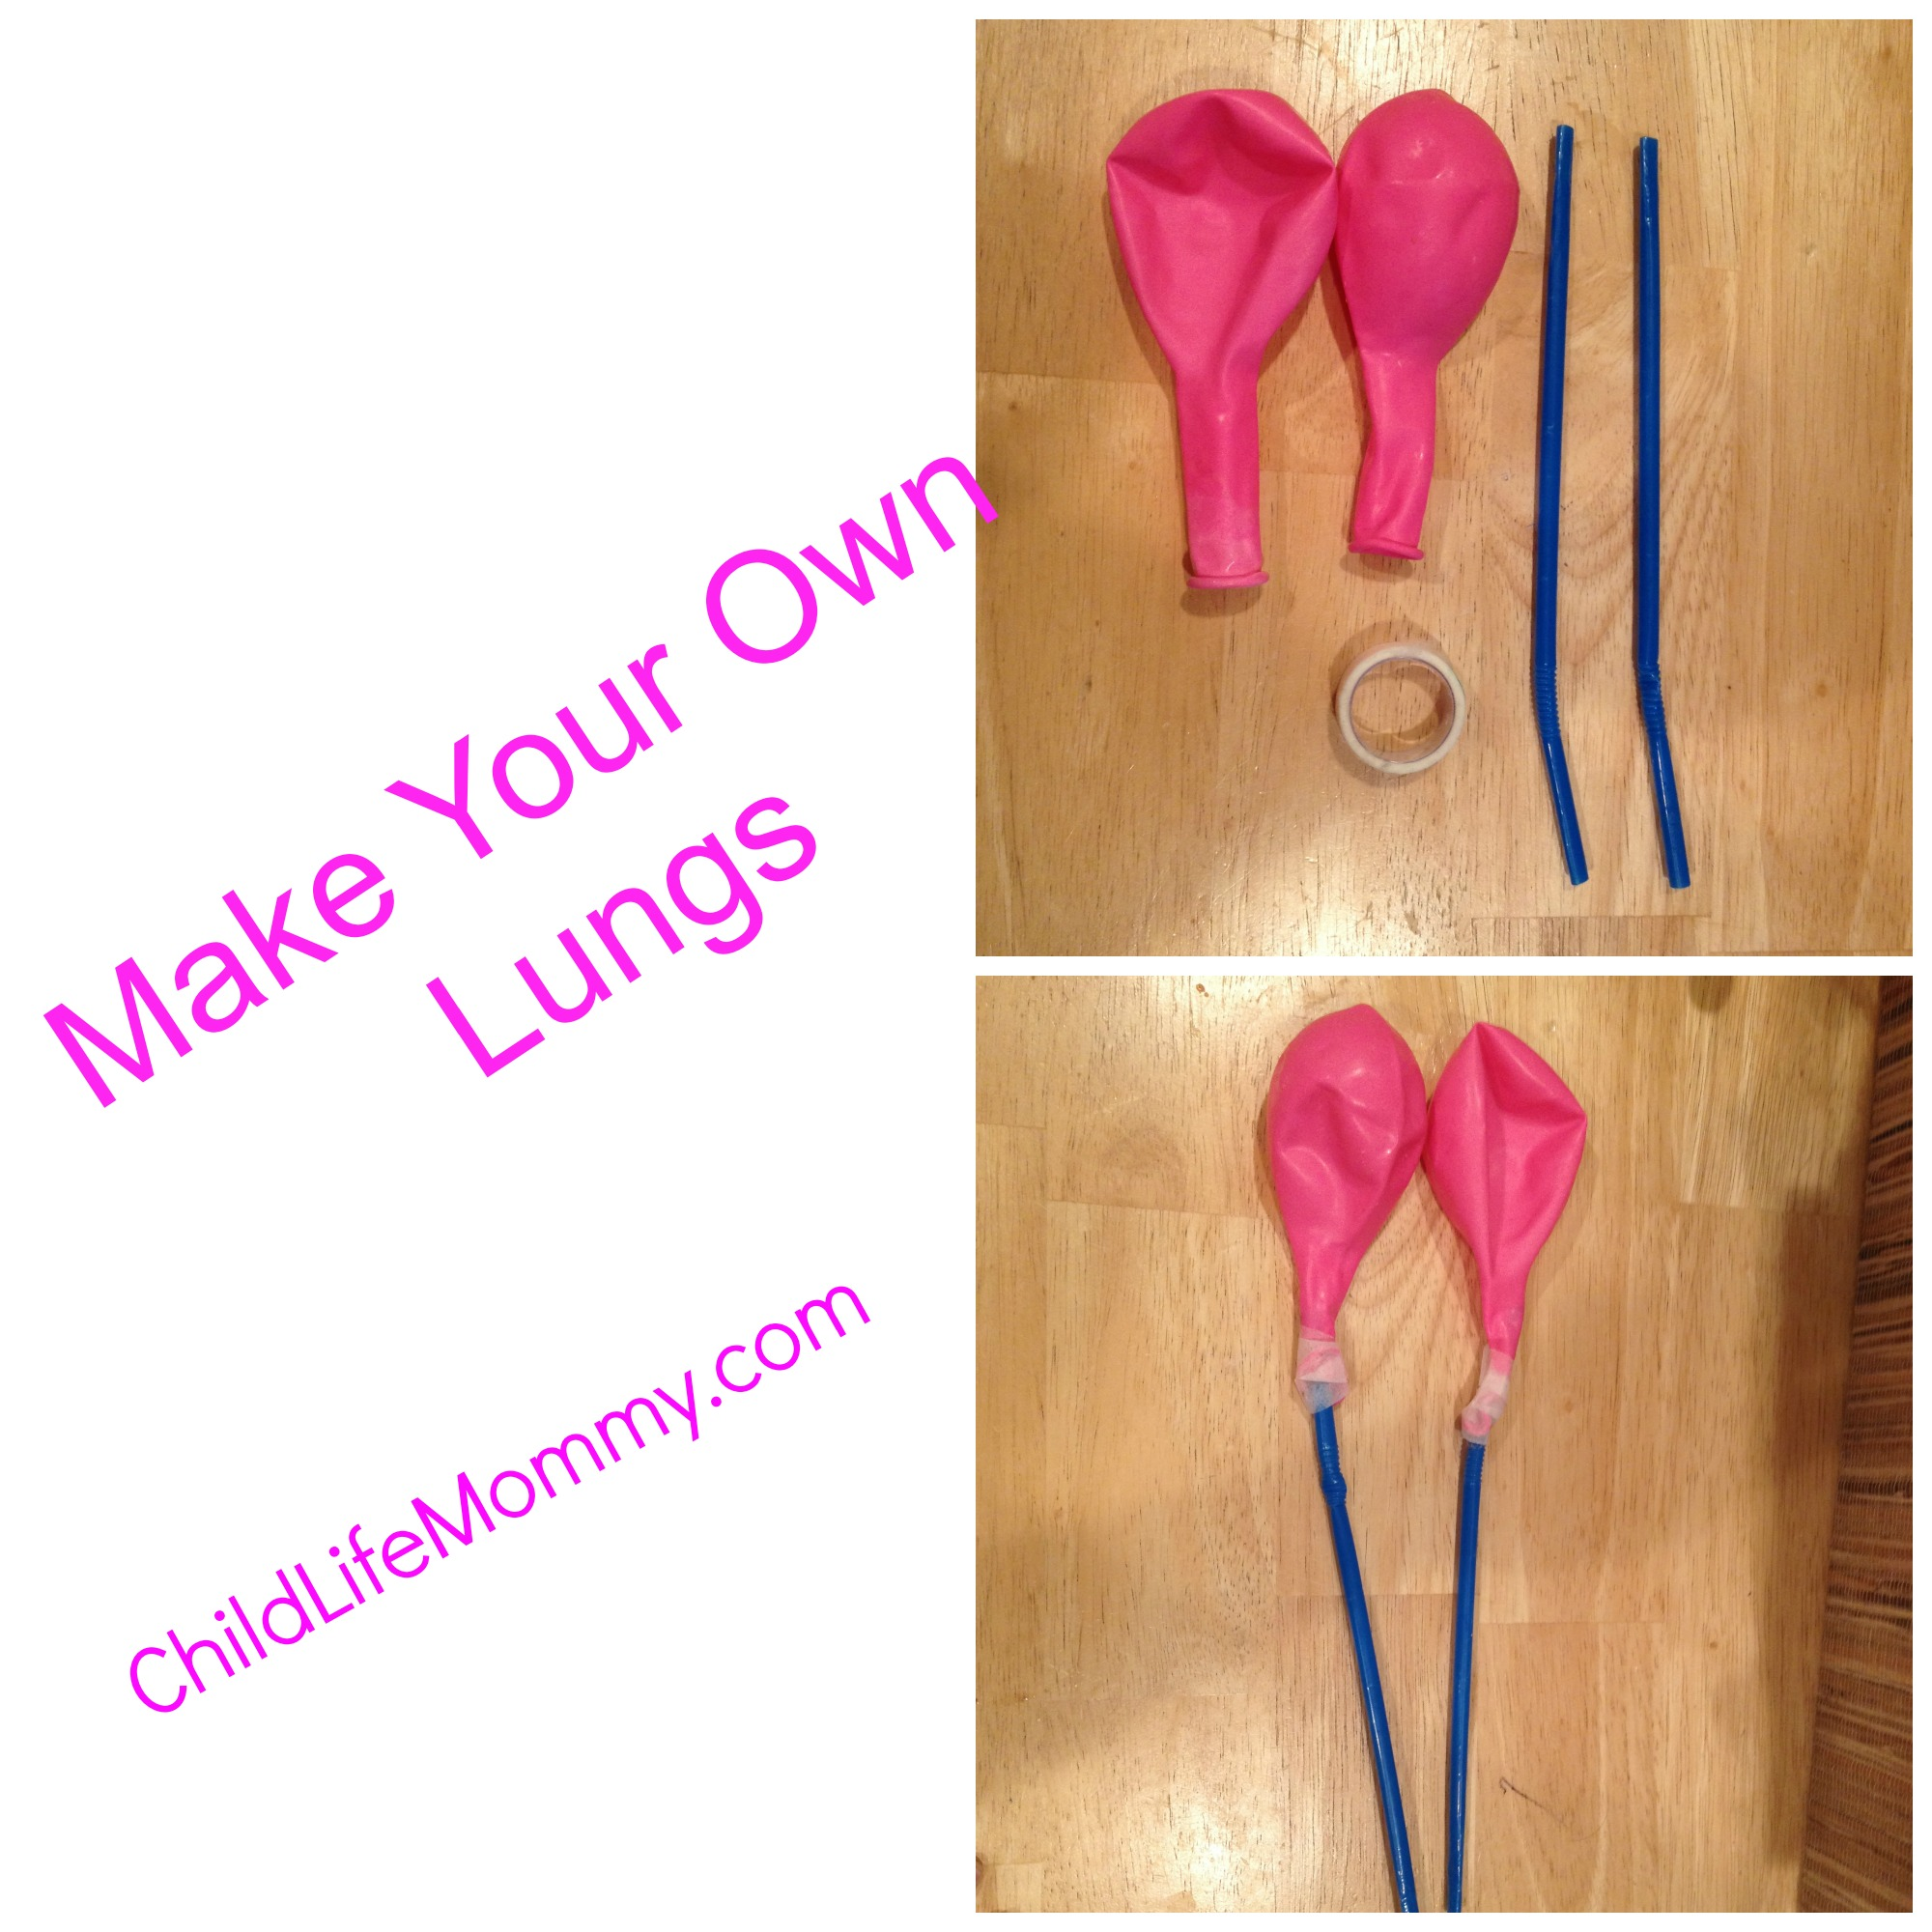 Make Your Own Lungs